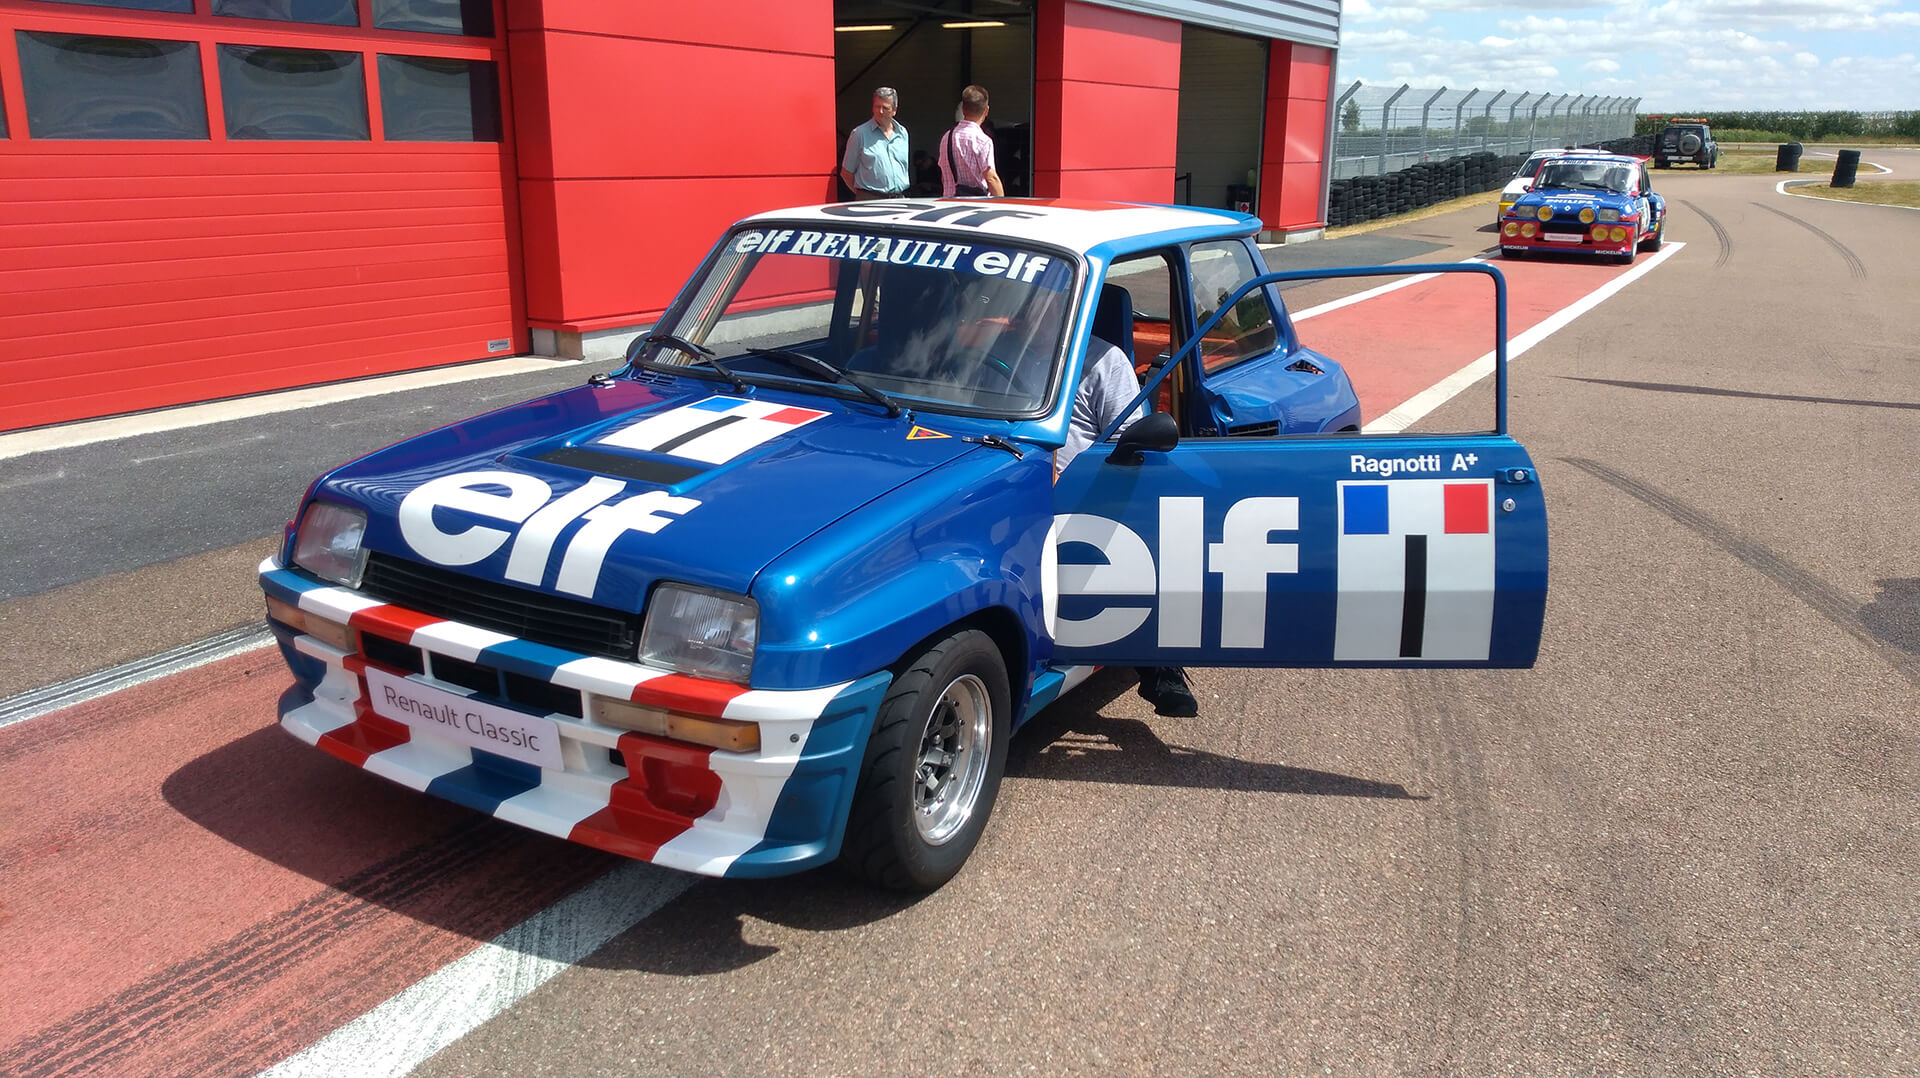 Renault 5 Turbo Europa Cup